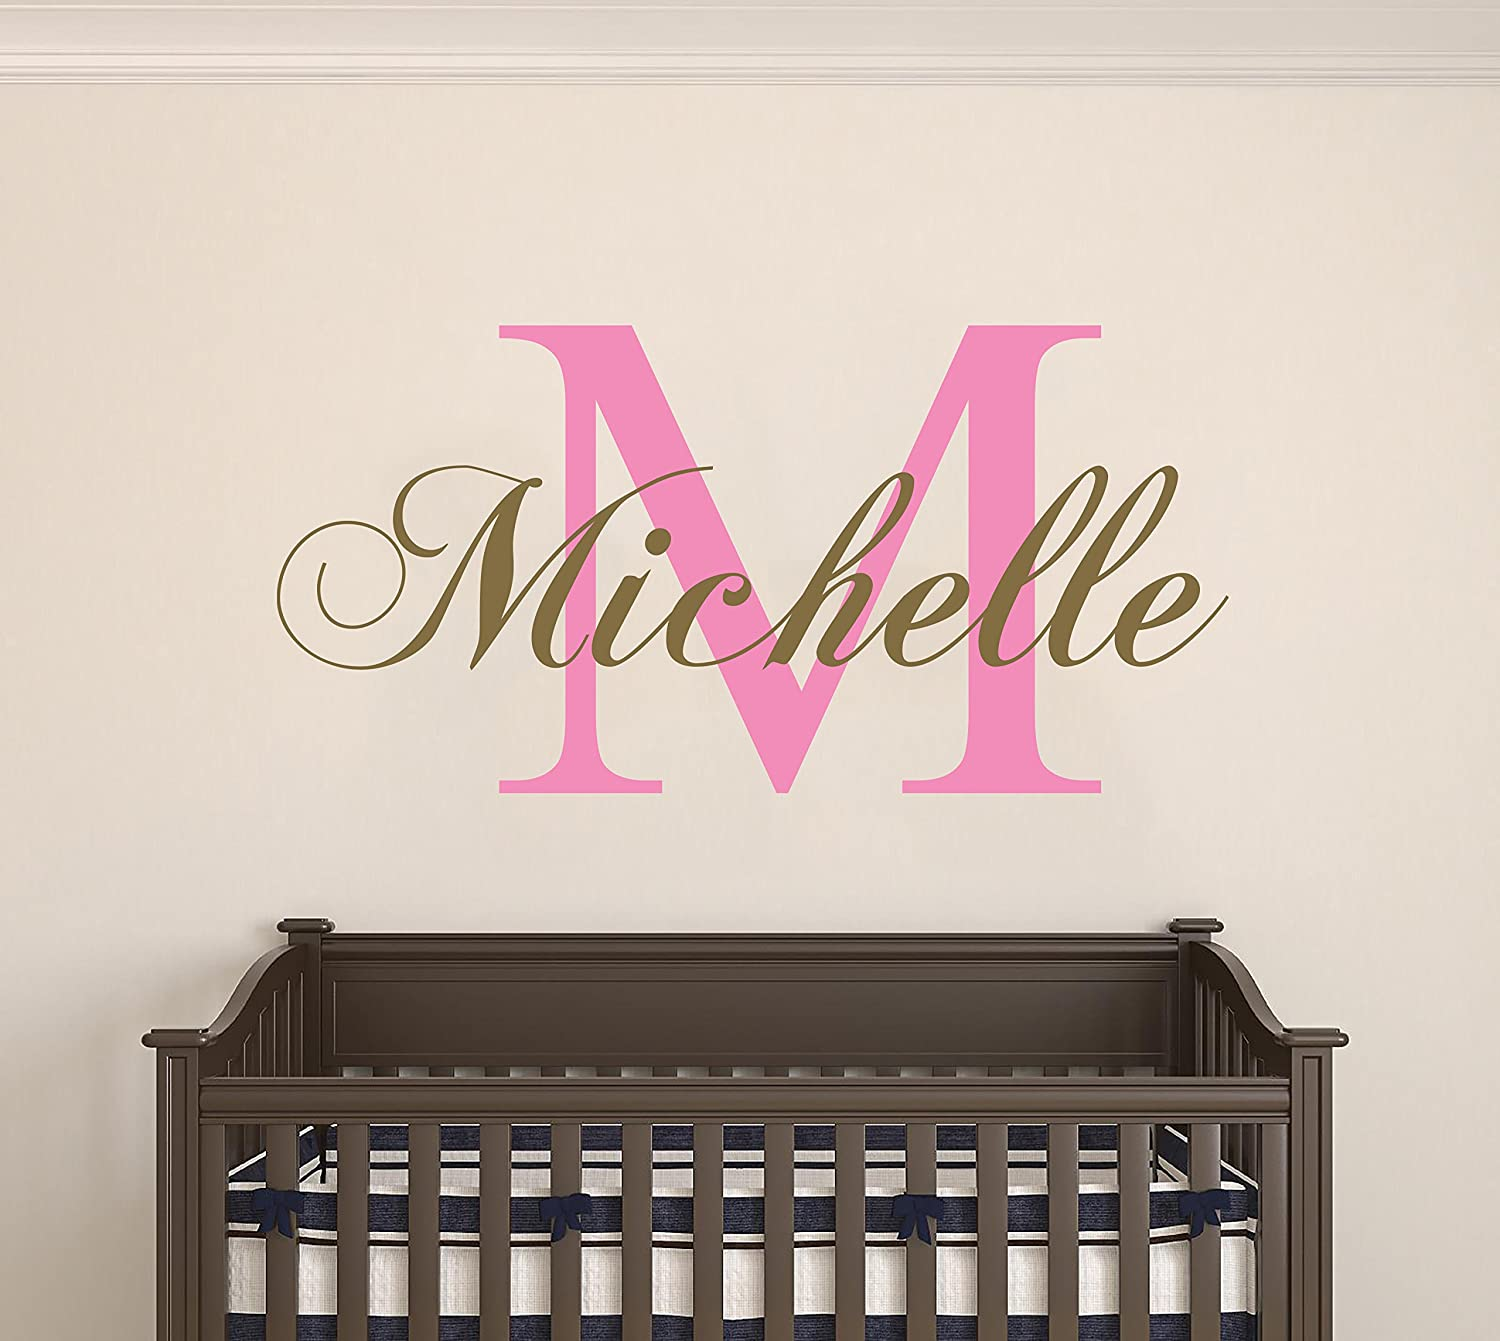 Custom Name Chopin Gold Series Wall Decal Nursery - Baby Boy Girl Decoration - Mural Wall Decal Sticker for Home Interior Decoration Car Laptop (MM39) (Wide 30 x 15 Height) e-Graphic Design Inc